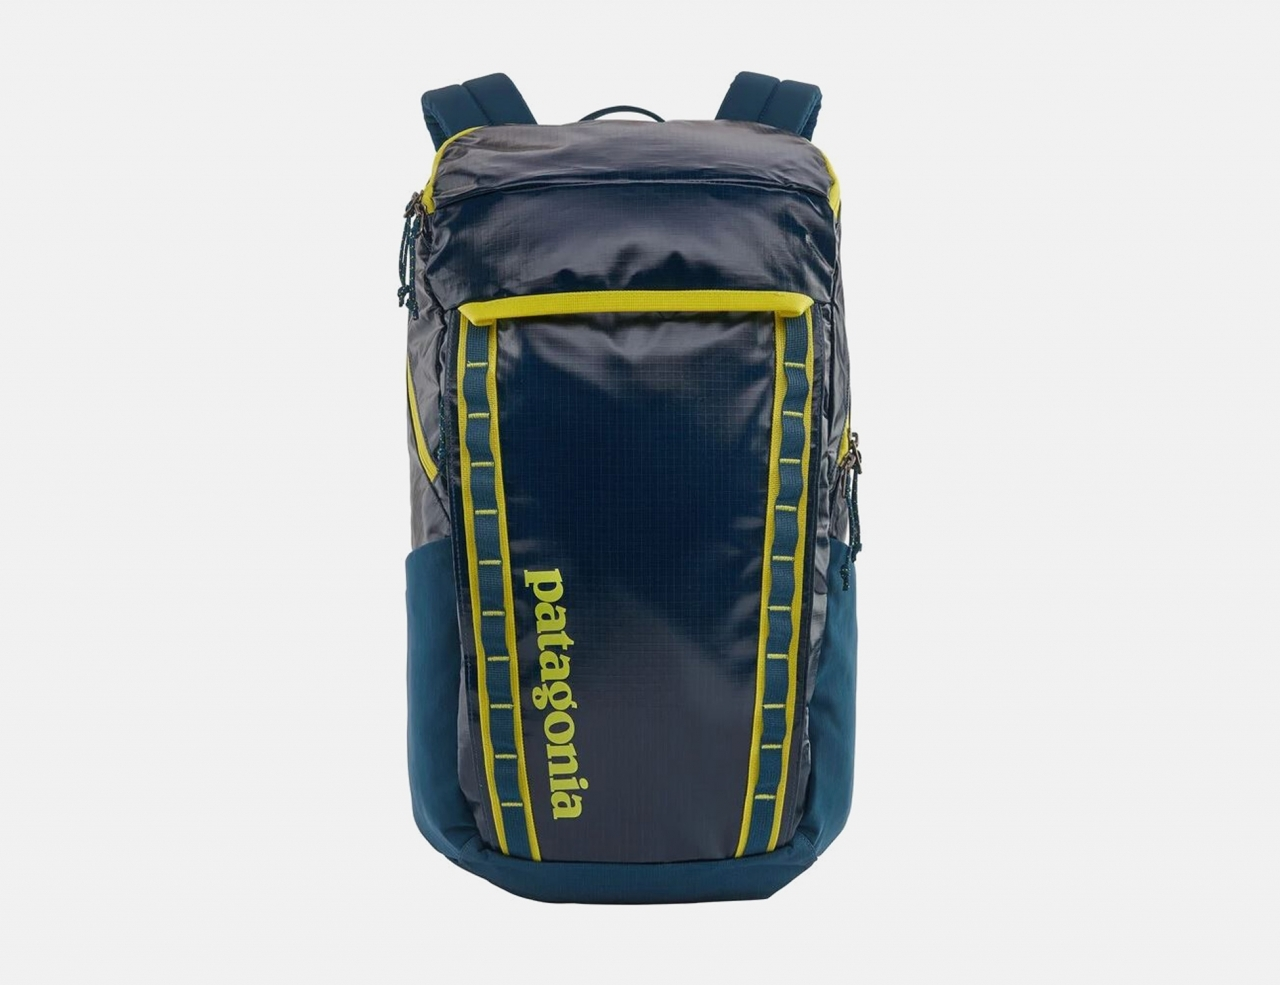 Patagonia Black Hole Pack 25L Backpack - Crater Blue